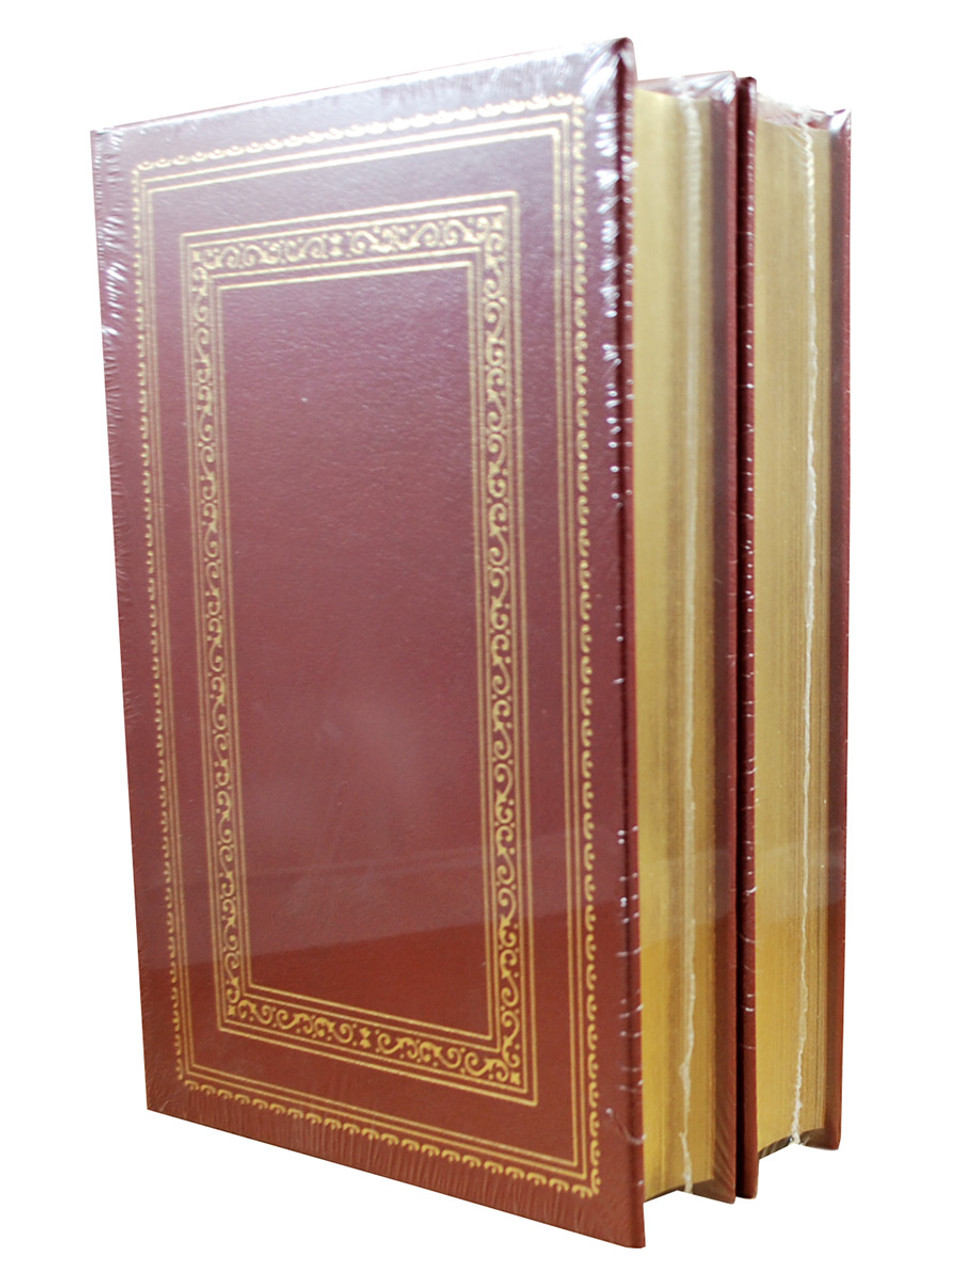 """Easton Press, Henry Kissinger """"Years of Upheaval"""" Limited Edition 2-vol Leather Bound Set [Sealed]"""